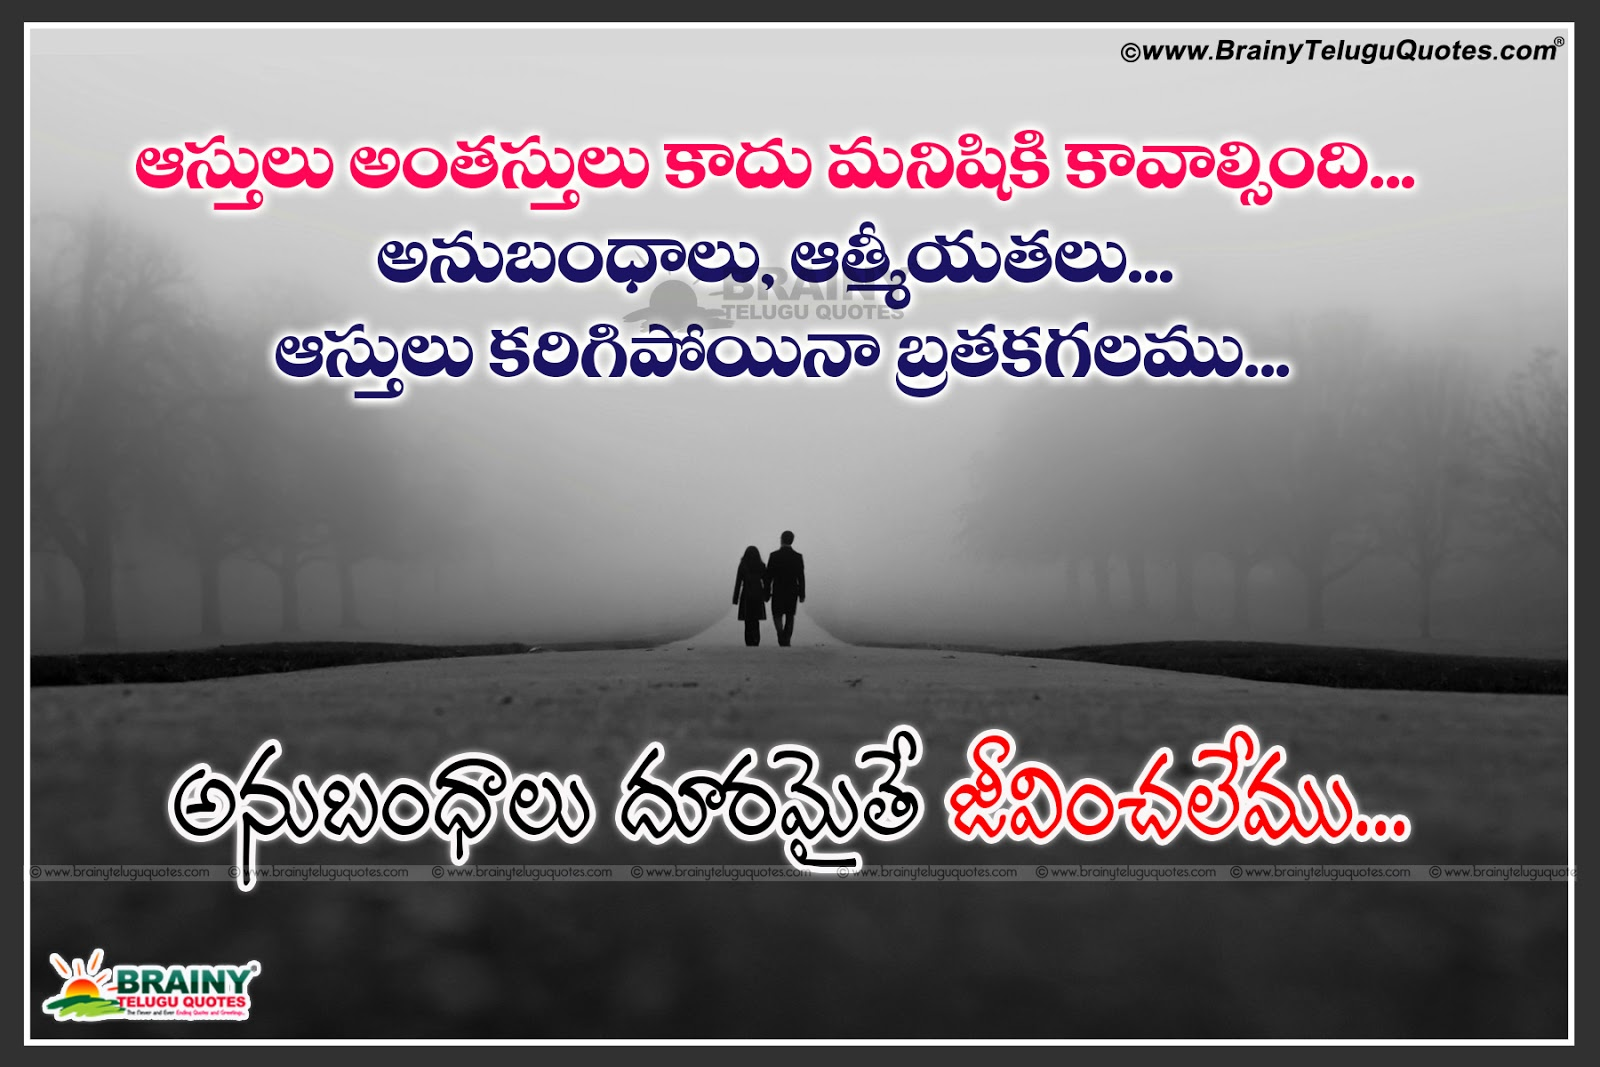 Latest Quotes About Life Telugu Relationship Value Quotes With Hd Wallpaperstelugu Quotes